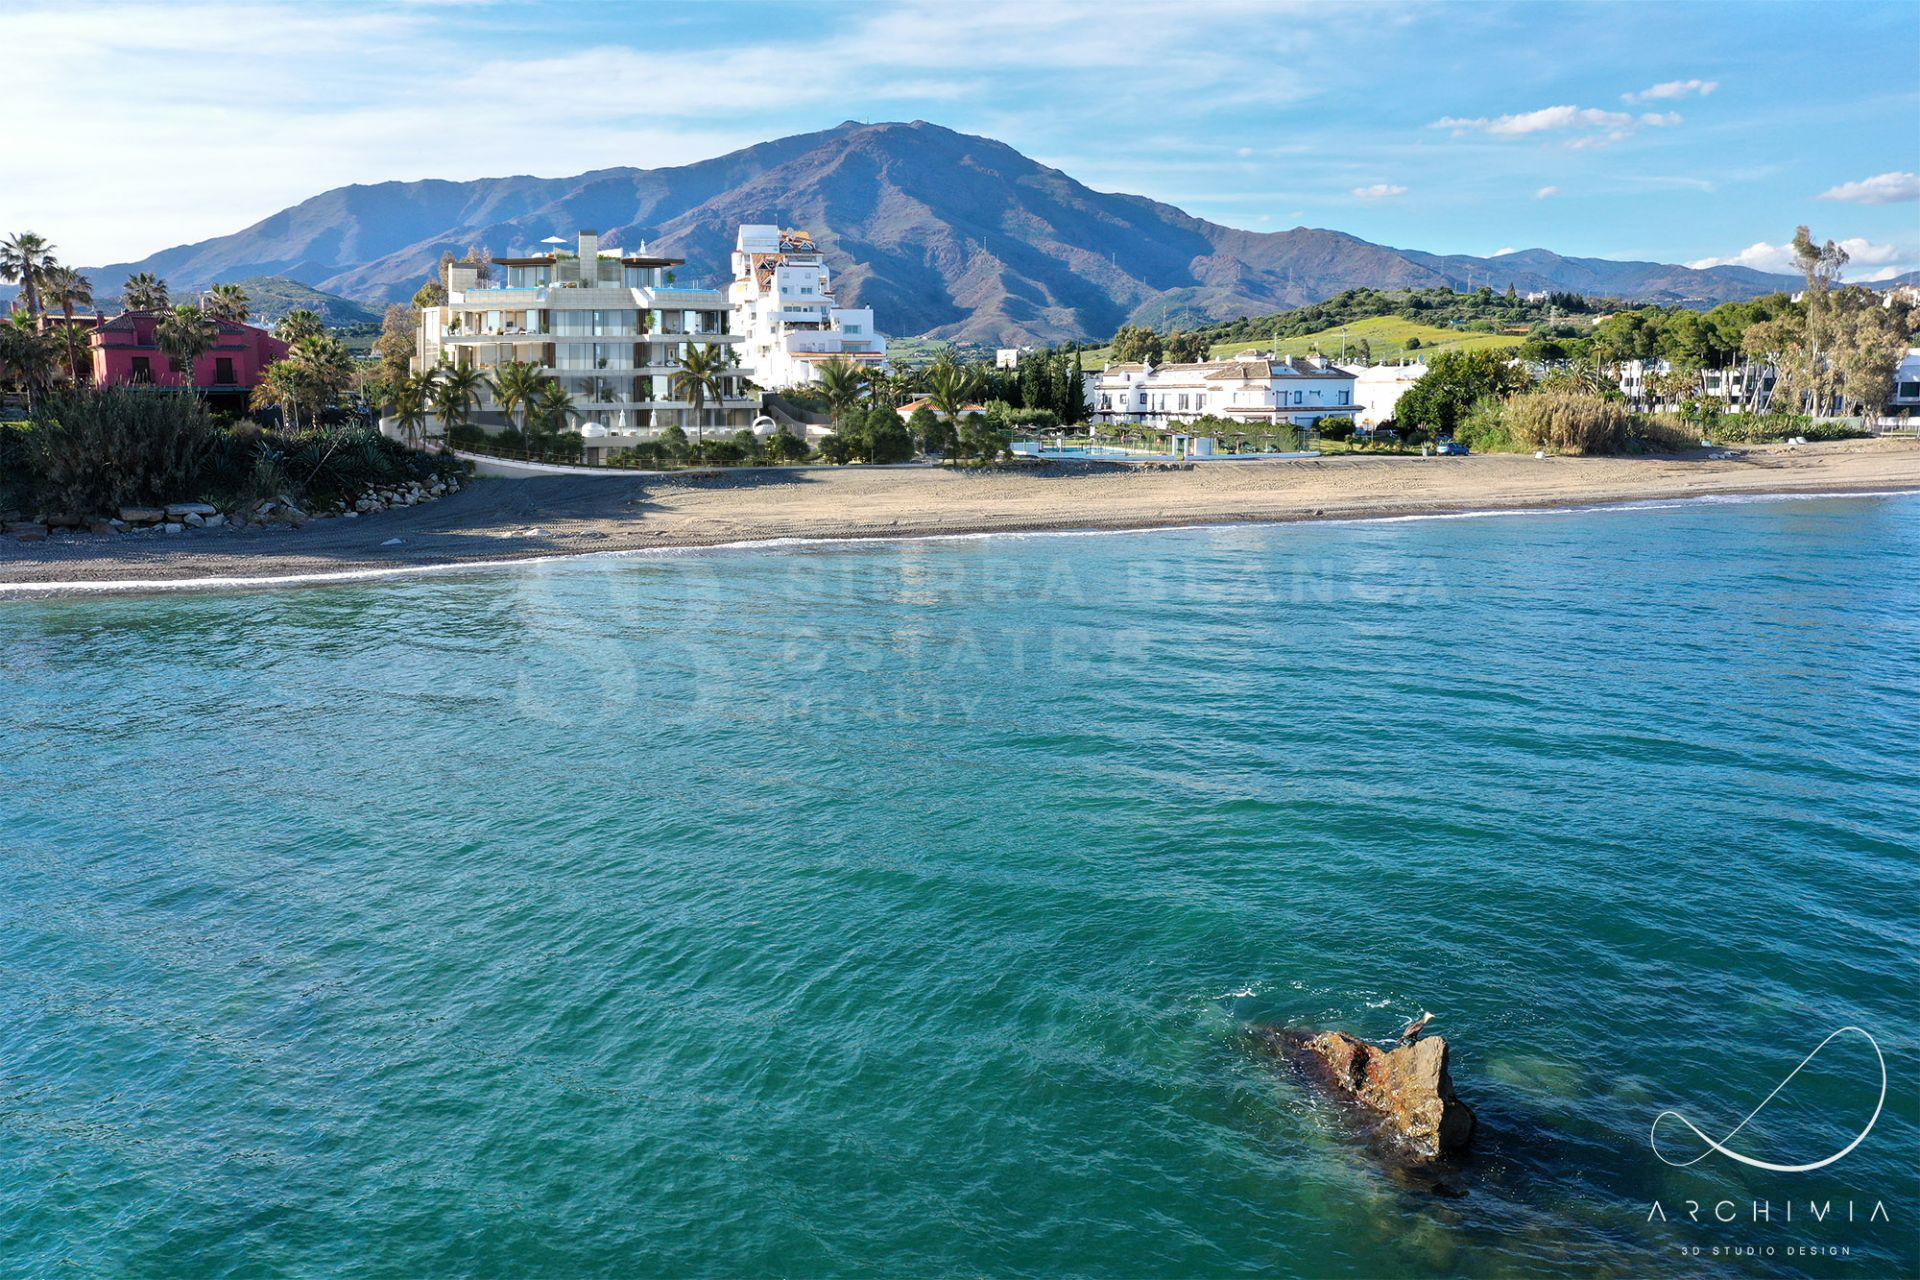 The Sapphire - An Exclusive Beachfront Resort in Estepona